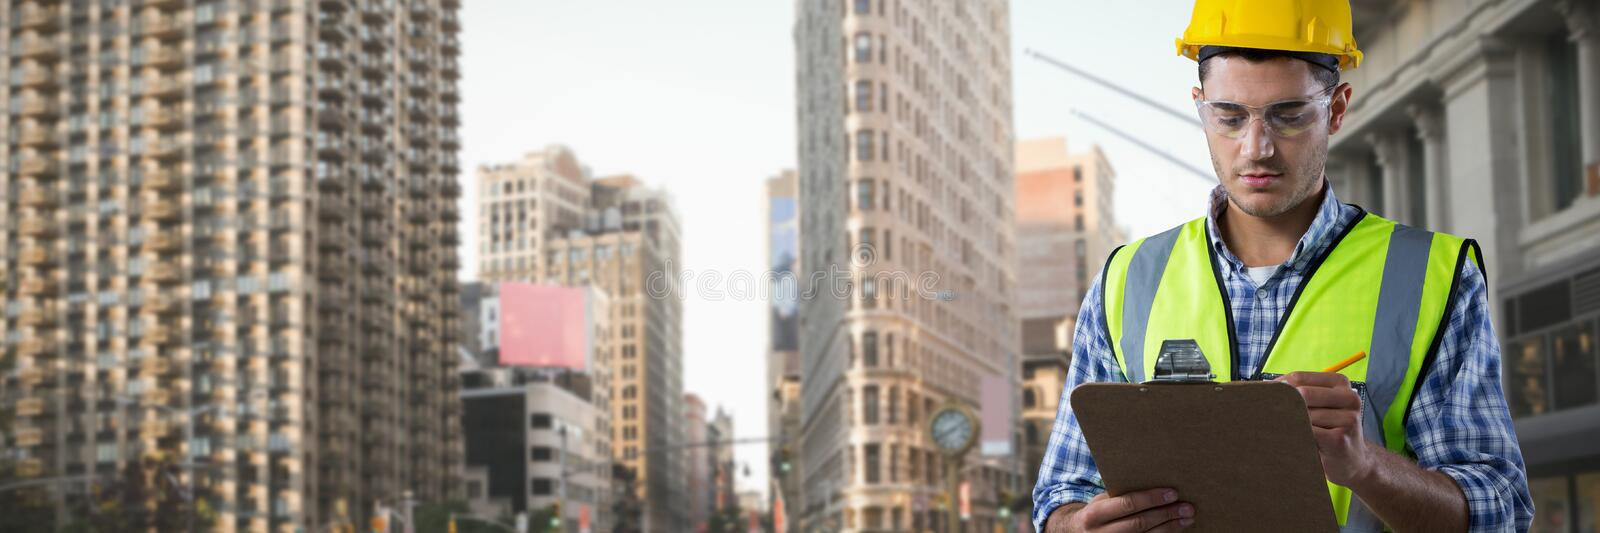 Composite image of concentrated construction worker stock photo